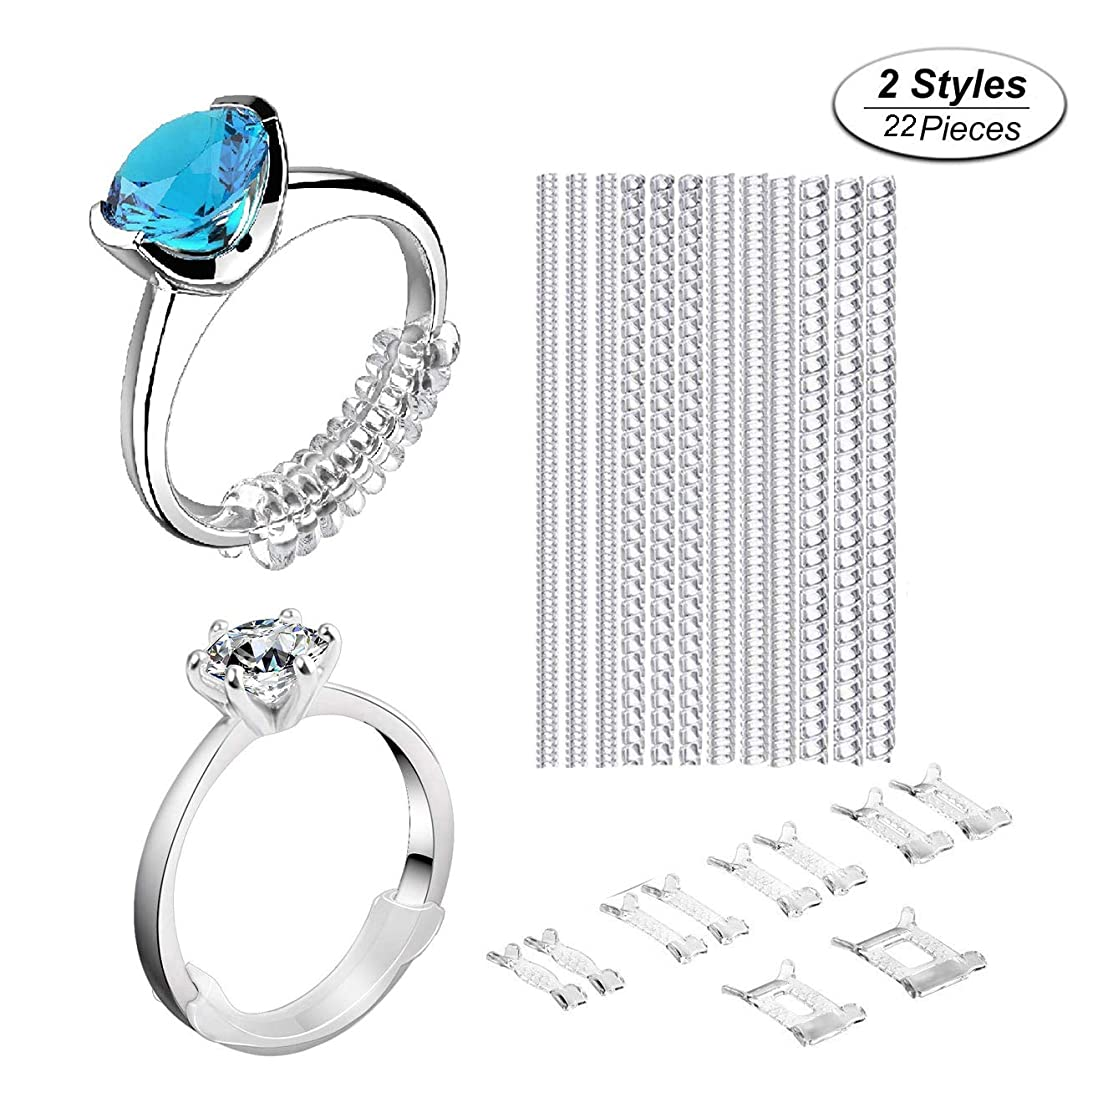 Fashionclubs Ring Size Adjuster for Loosing Rings Invisible Ring Guard Ring Size Reducer Spacer,10 Sizes of Ring Adjuster Sizer Resizer for Any Rings, 22 Pieces, 2 Styles